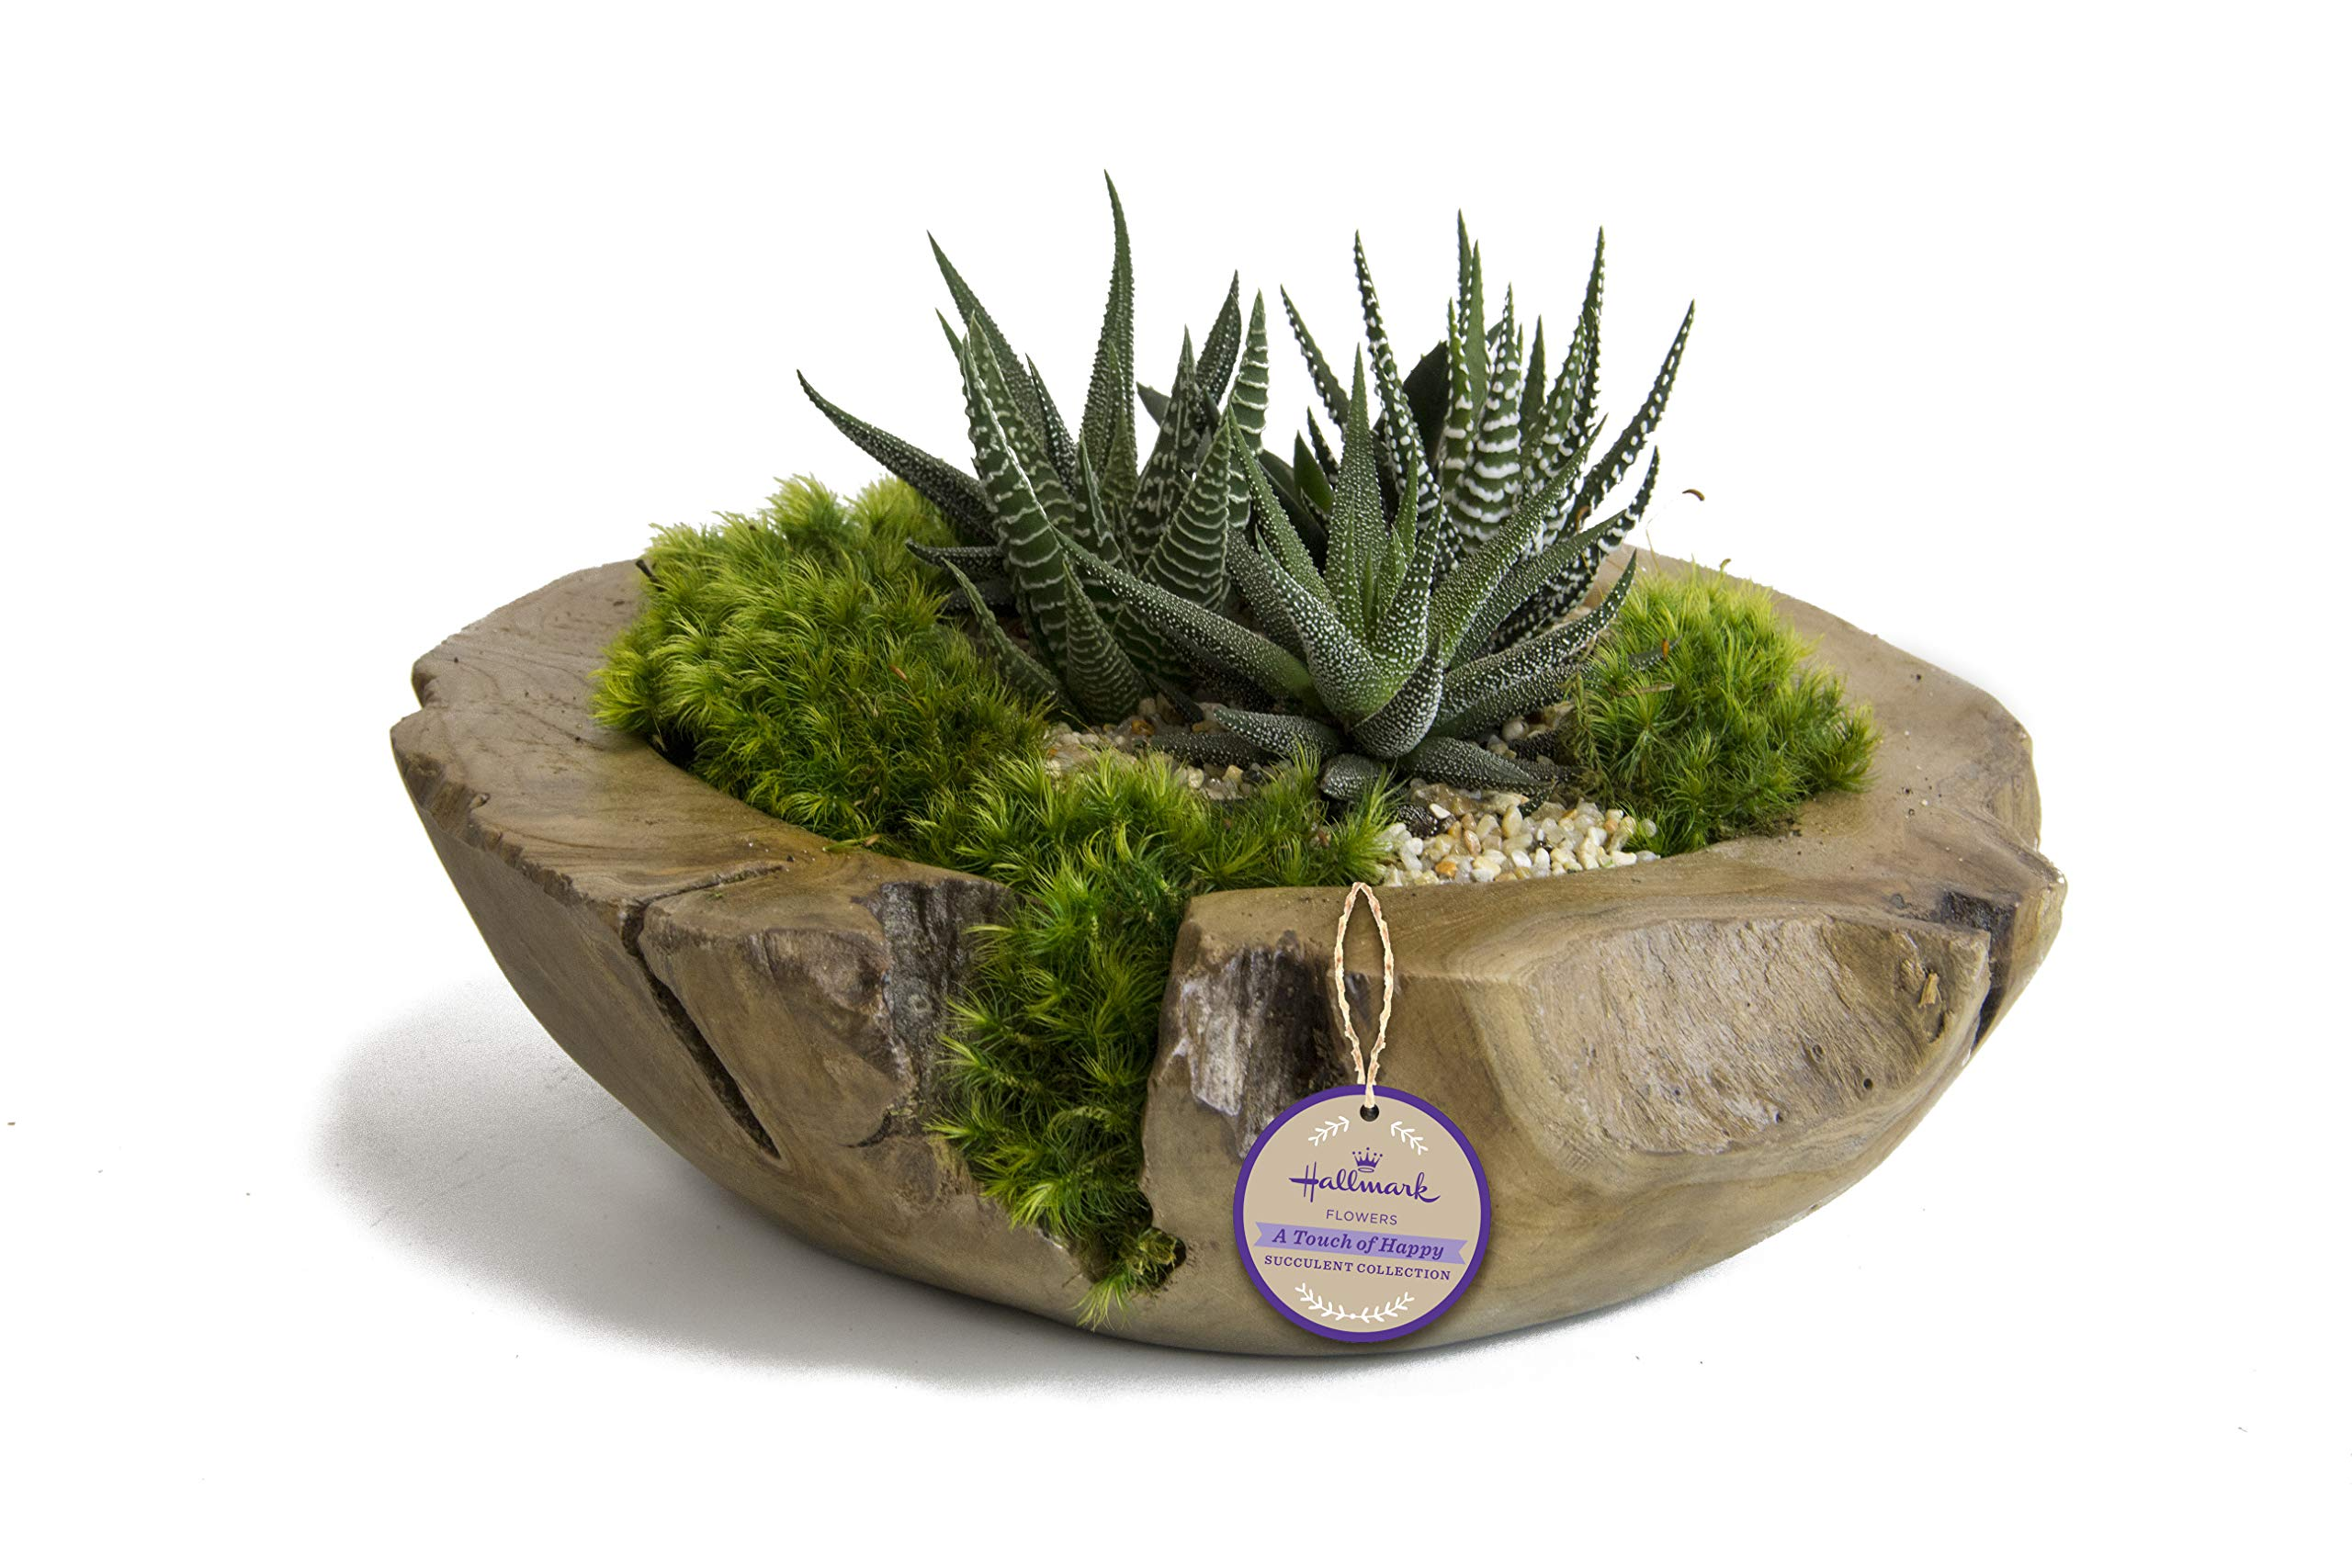 Live Succulent Garden in 10'' Teak Bowl Container, From Hallmark Flowers by Hallmark Flowers (Image #1)